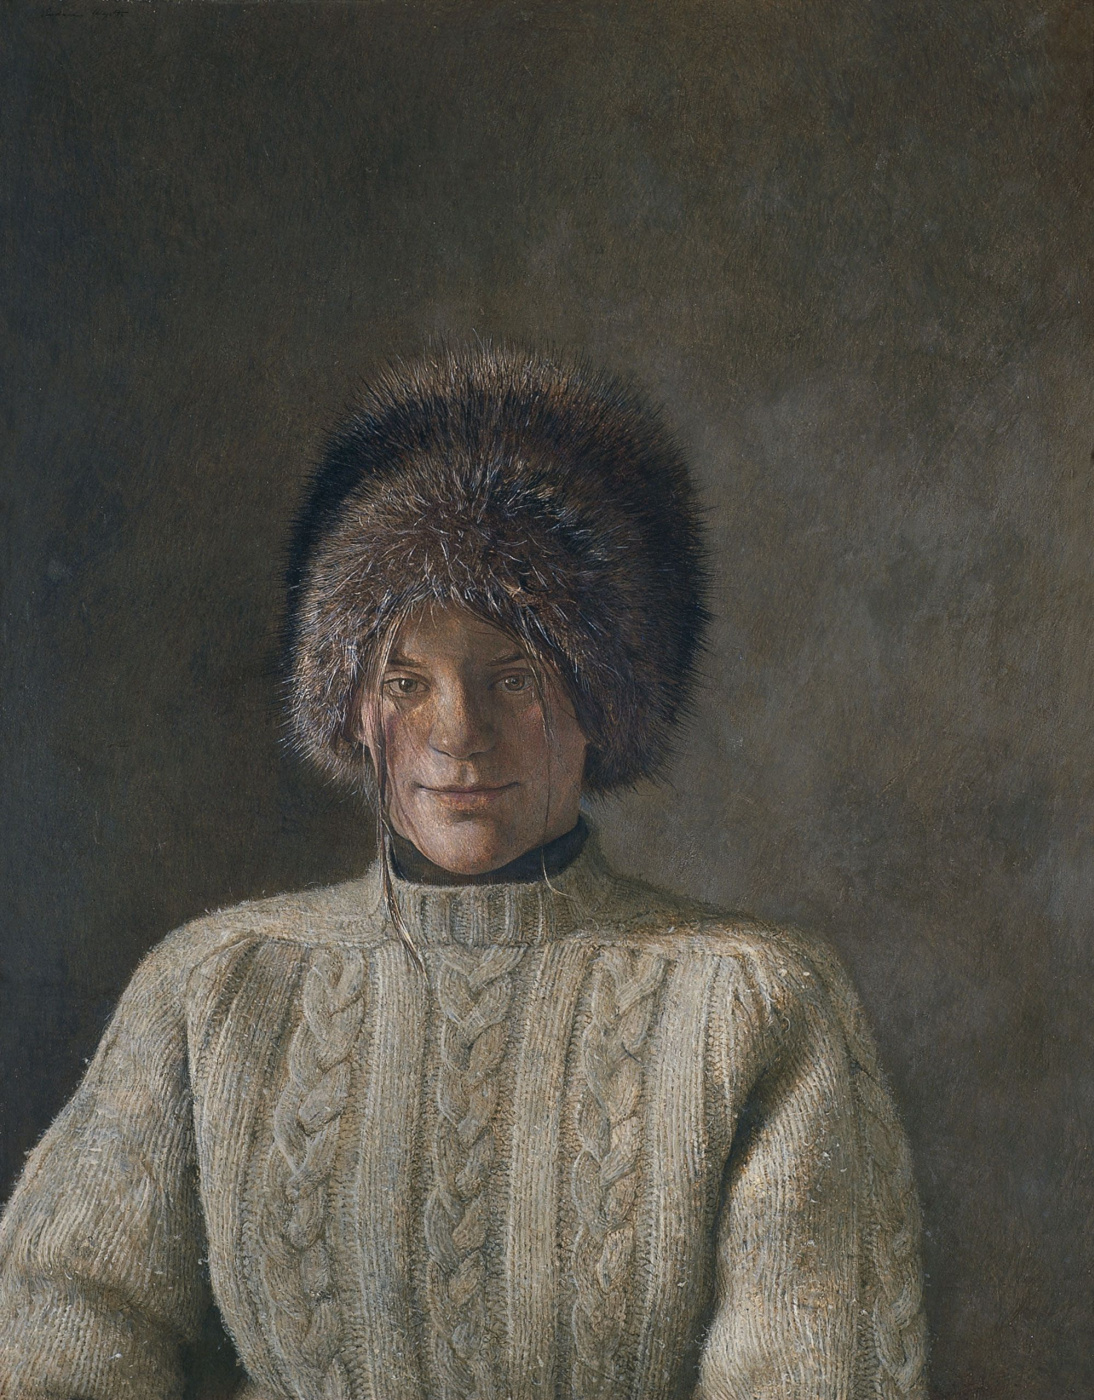 Andrew Wyeth. My young friend